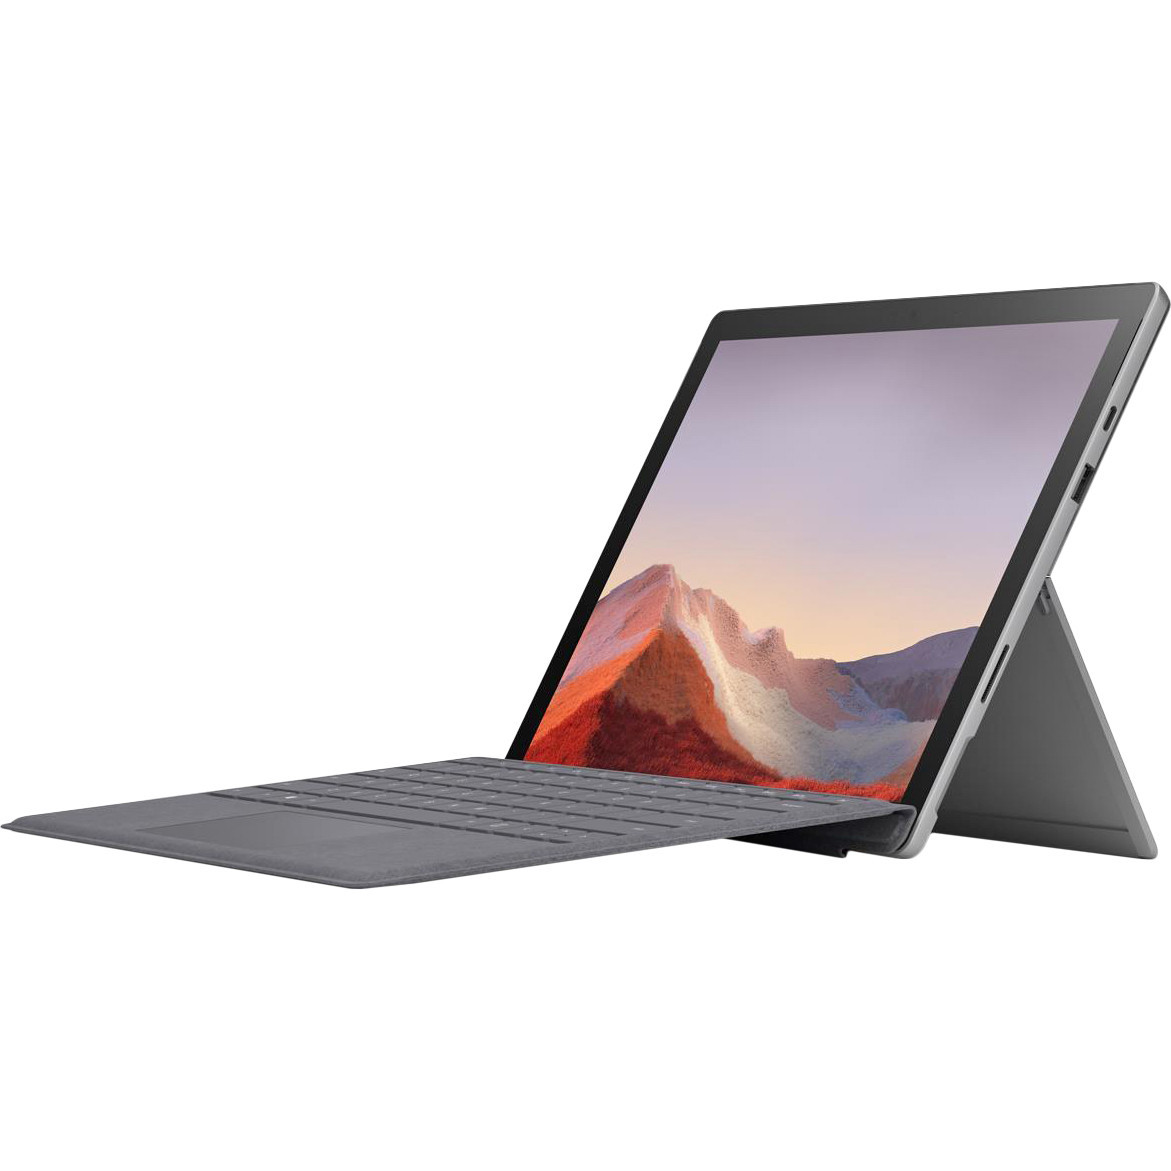 "Ноутбук Microsoft Surface Pro 7 Core i7/16Gb/256Gb 12.3"" 2-в-1 трансформер (VNX-00003)"